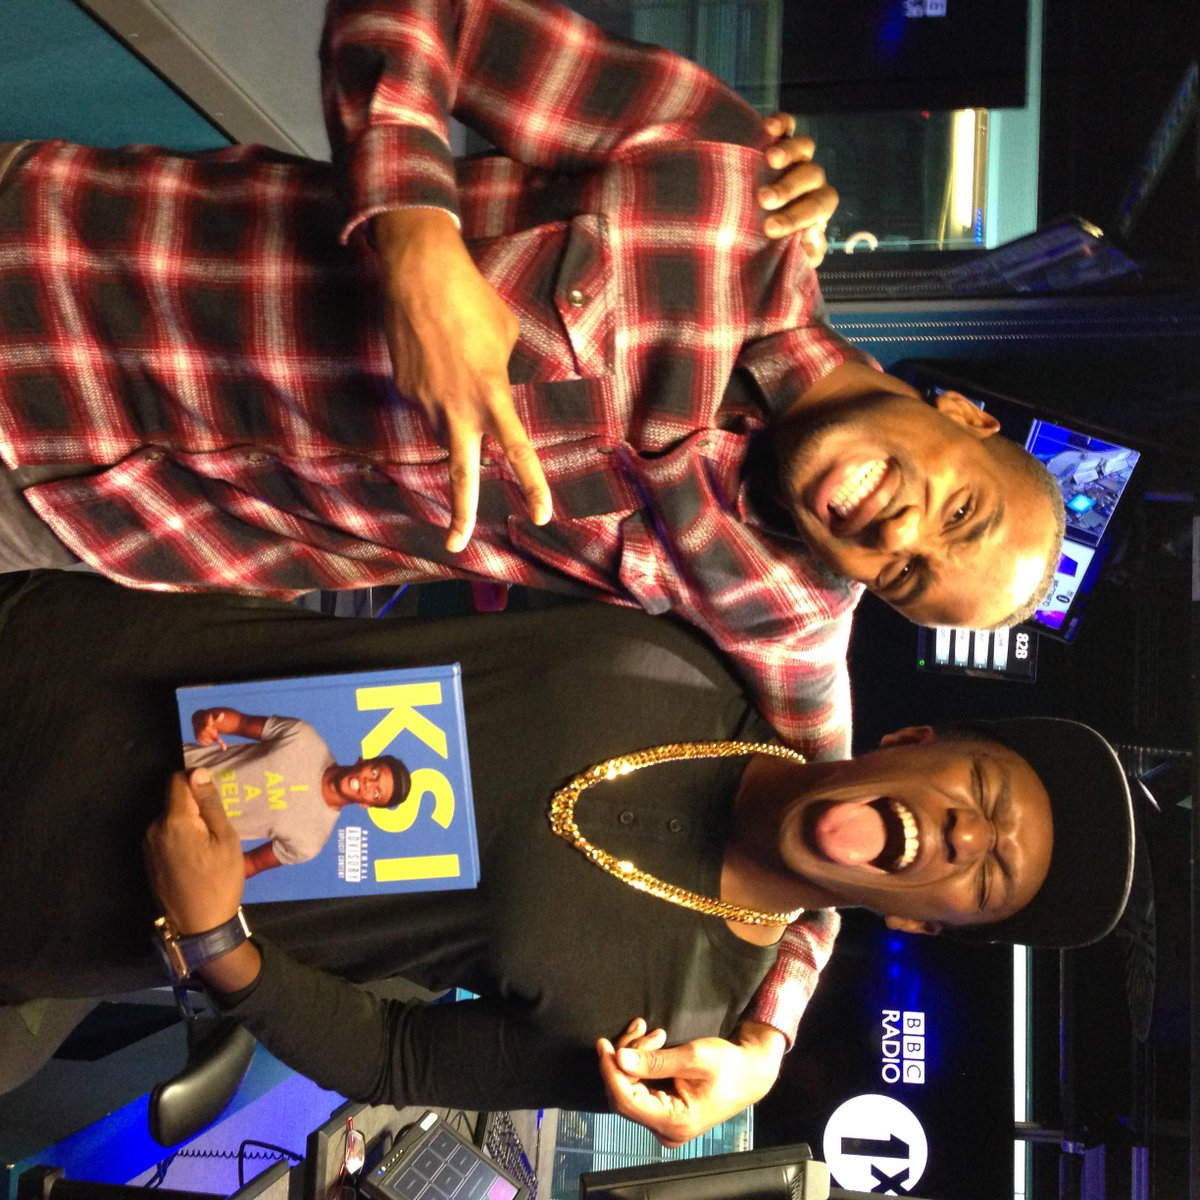 Watch my chat with @KSIOlajidebt who thinks schools should teach 'YouTube' lessons - http://t.co/cP9zdxFMX3 http://t.co/RDGPtxR0FY